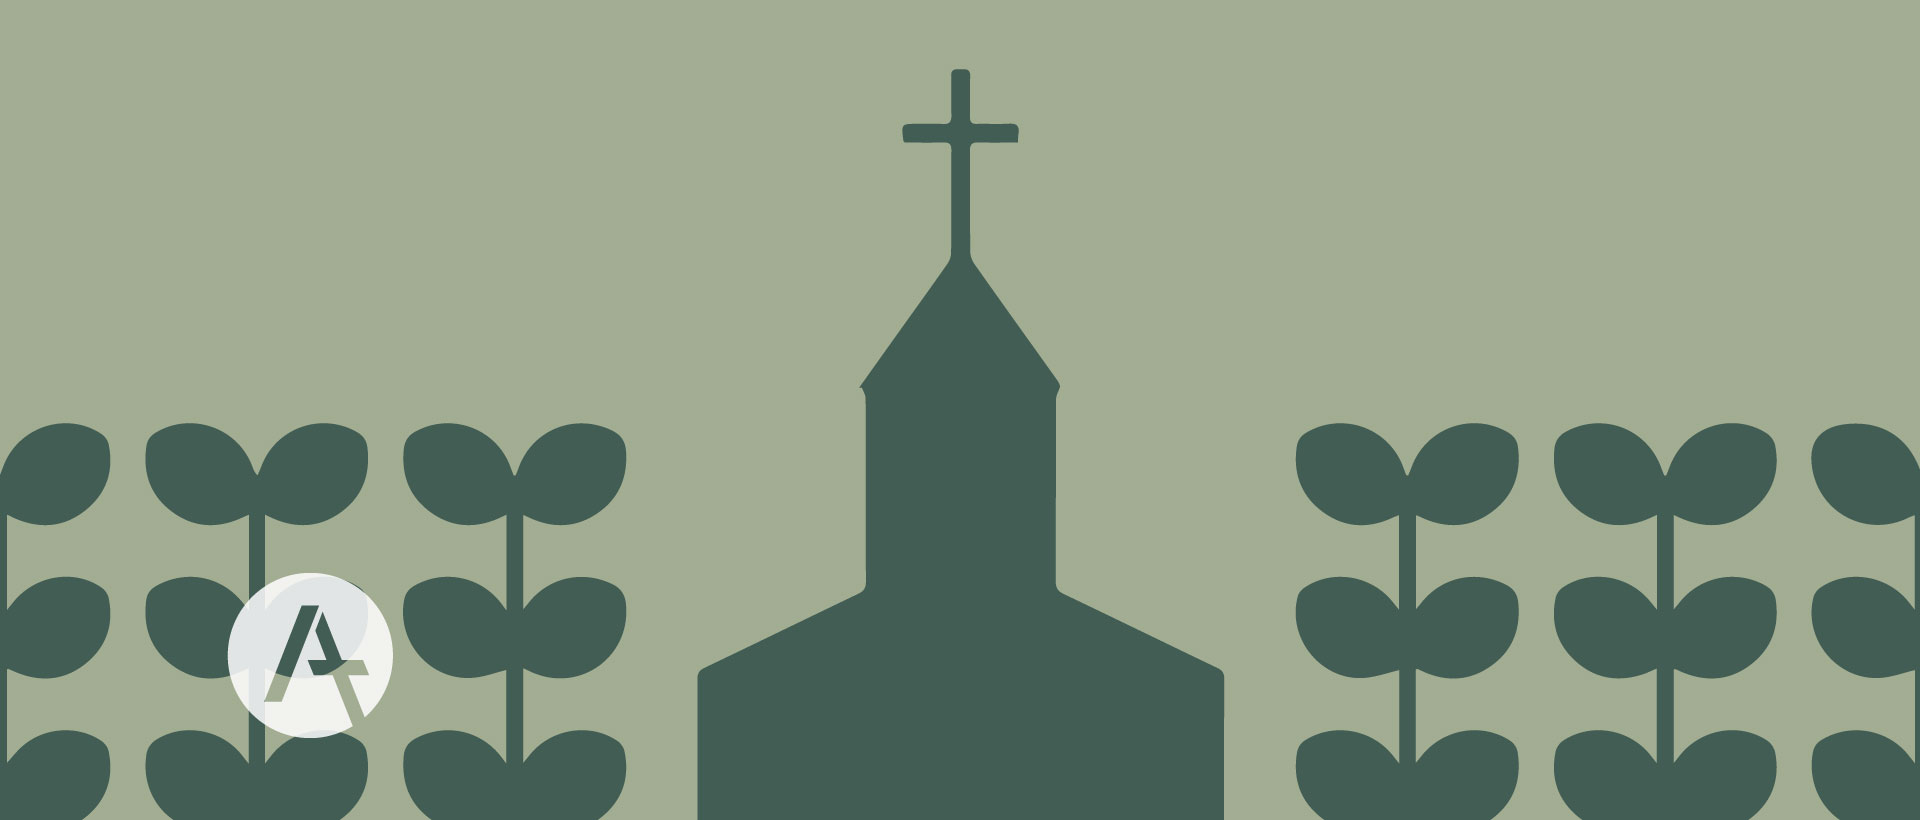 Challenges and Opportunities in Church Revitalization